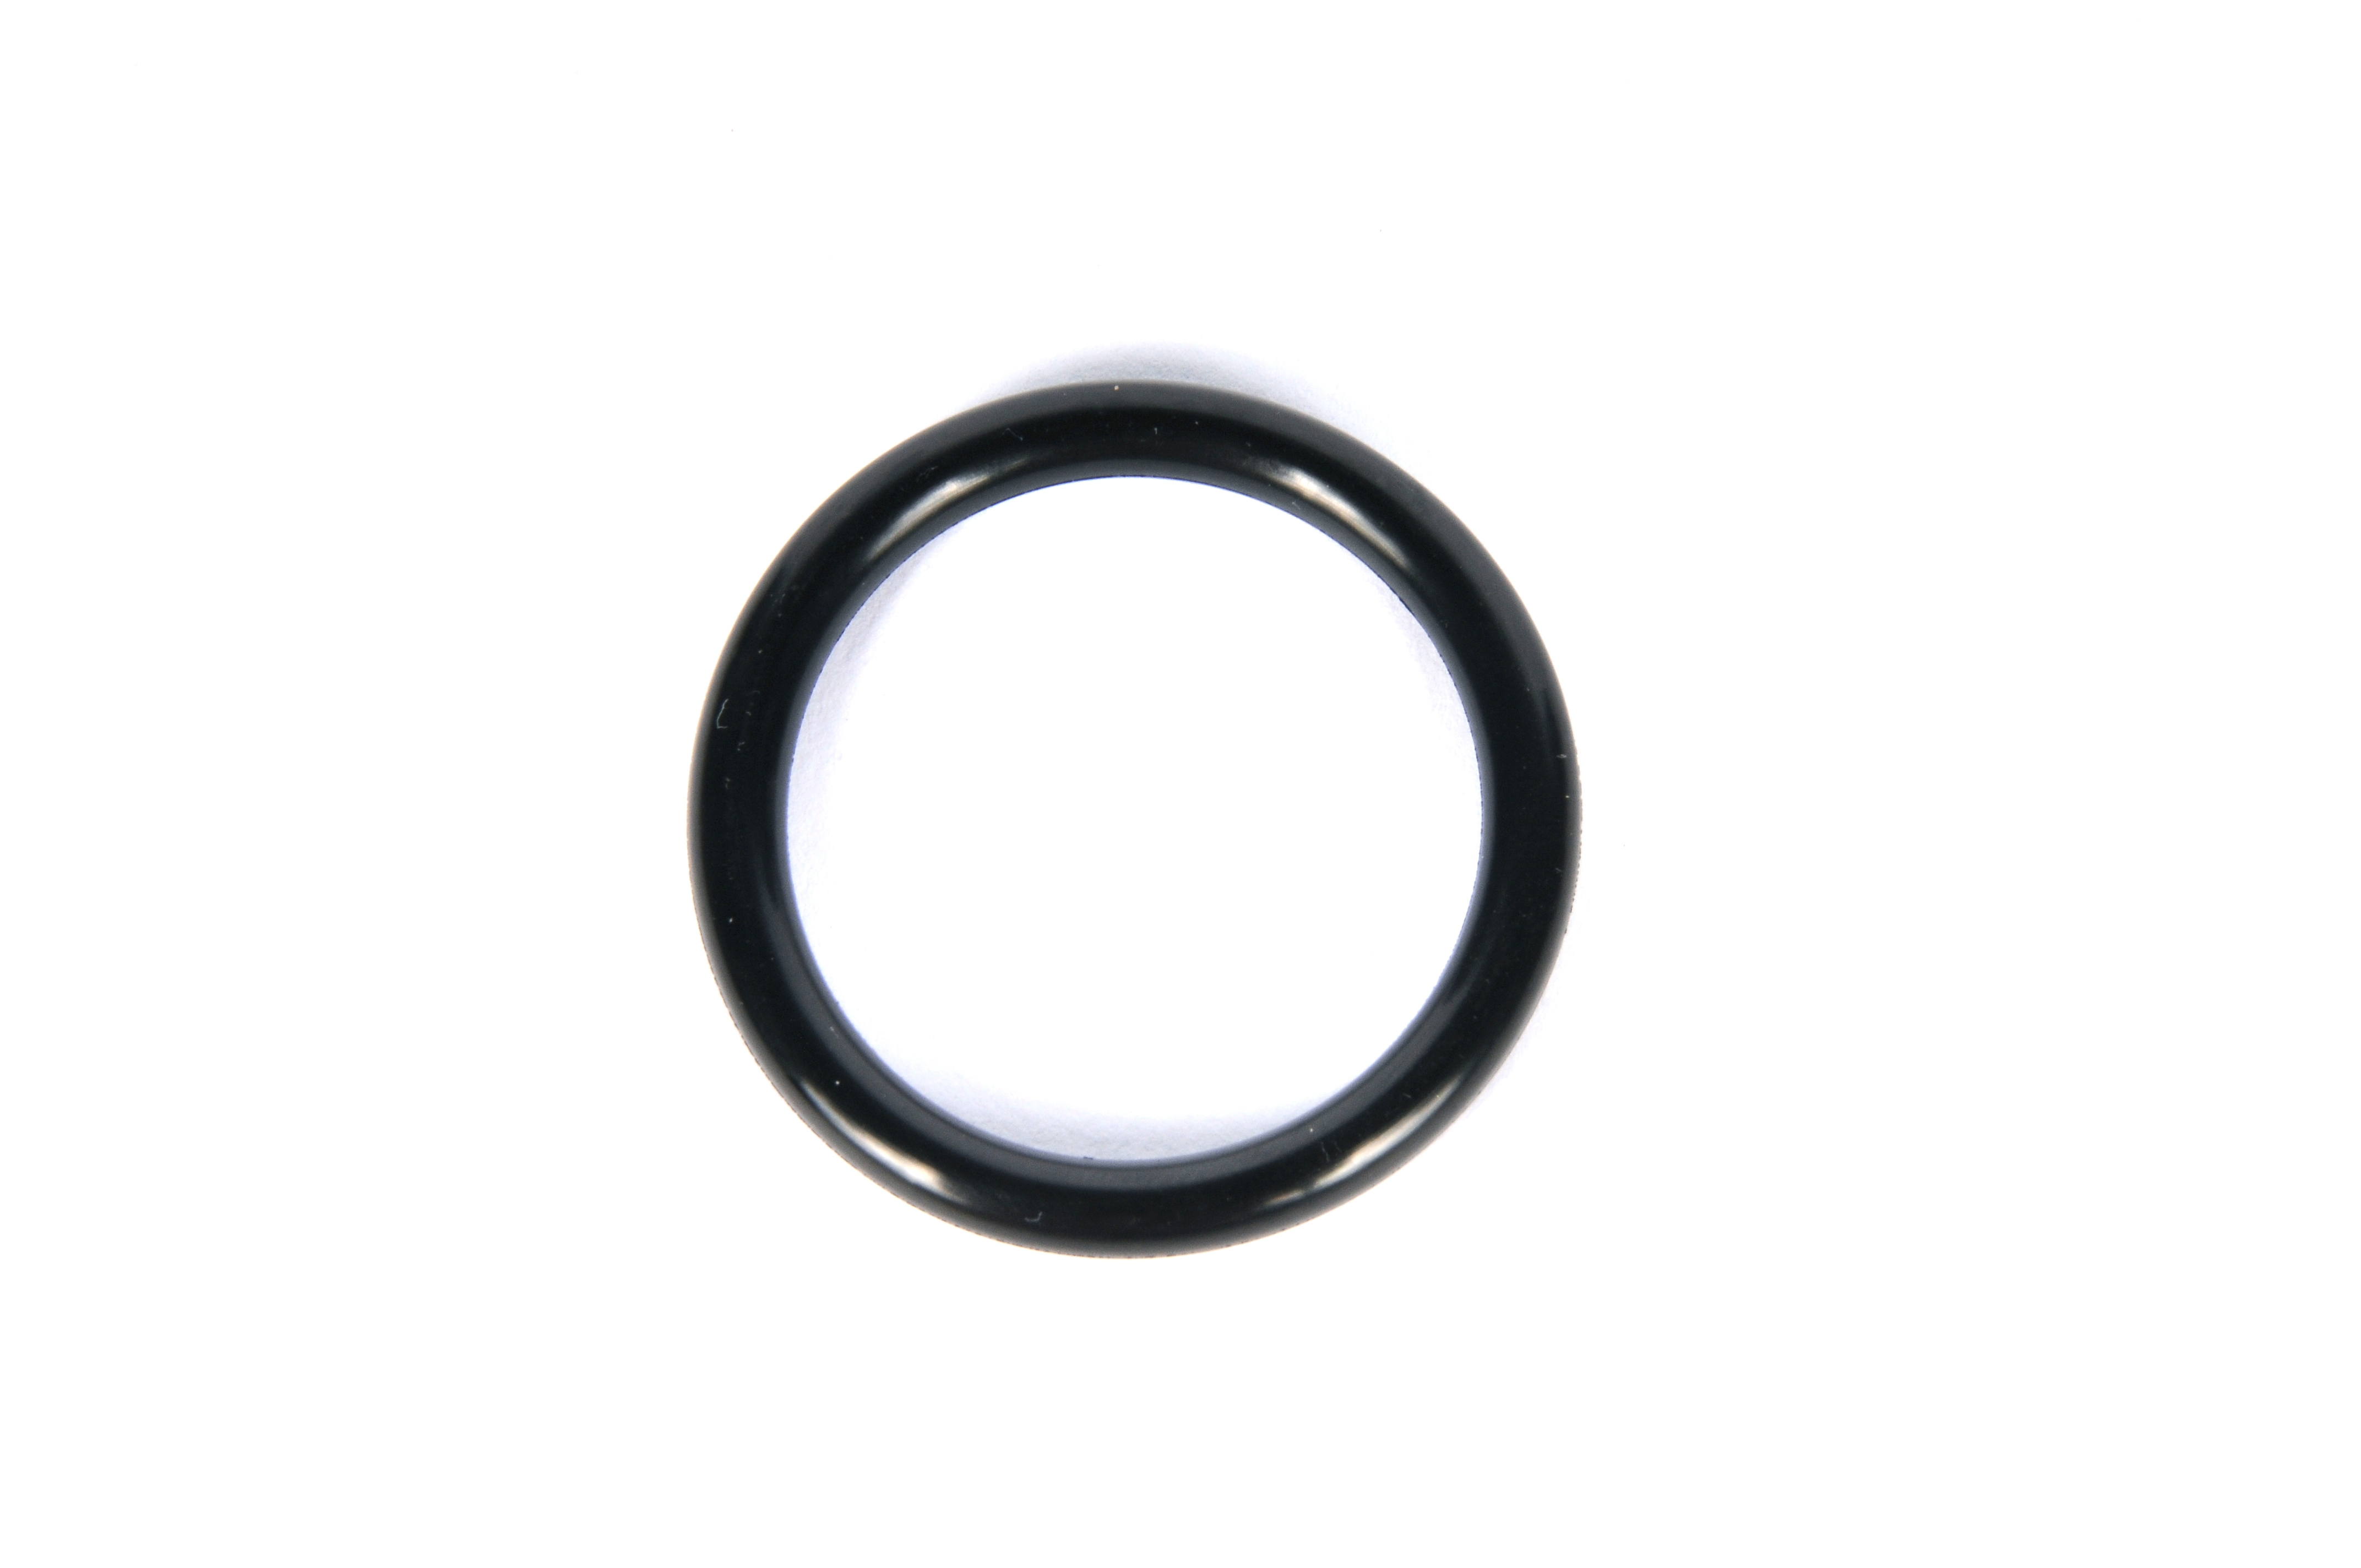 ACDELCO OE SERVICE - Prop Shaft Trans Flg Fluid Seal - DCB 89058836